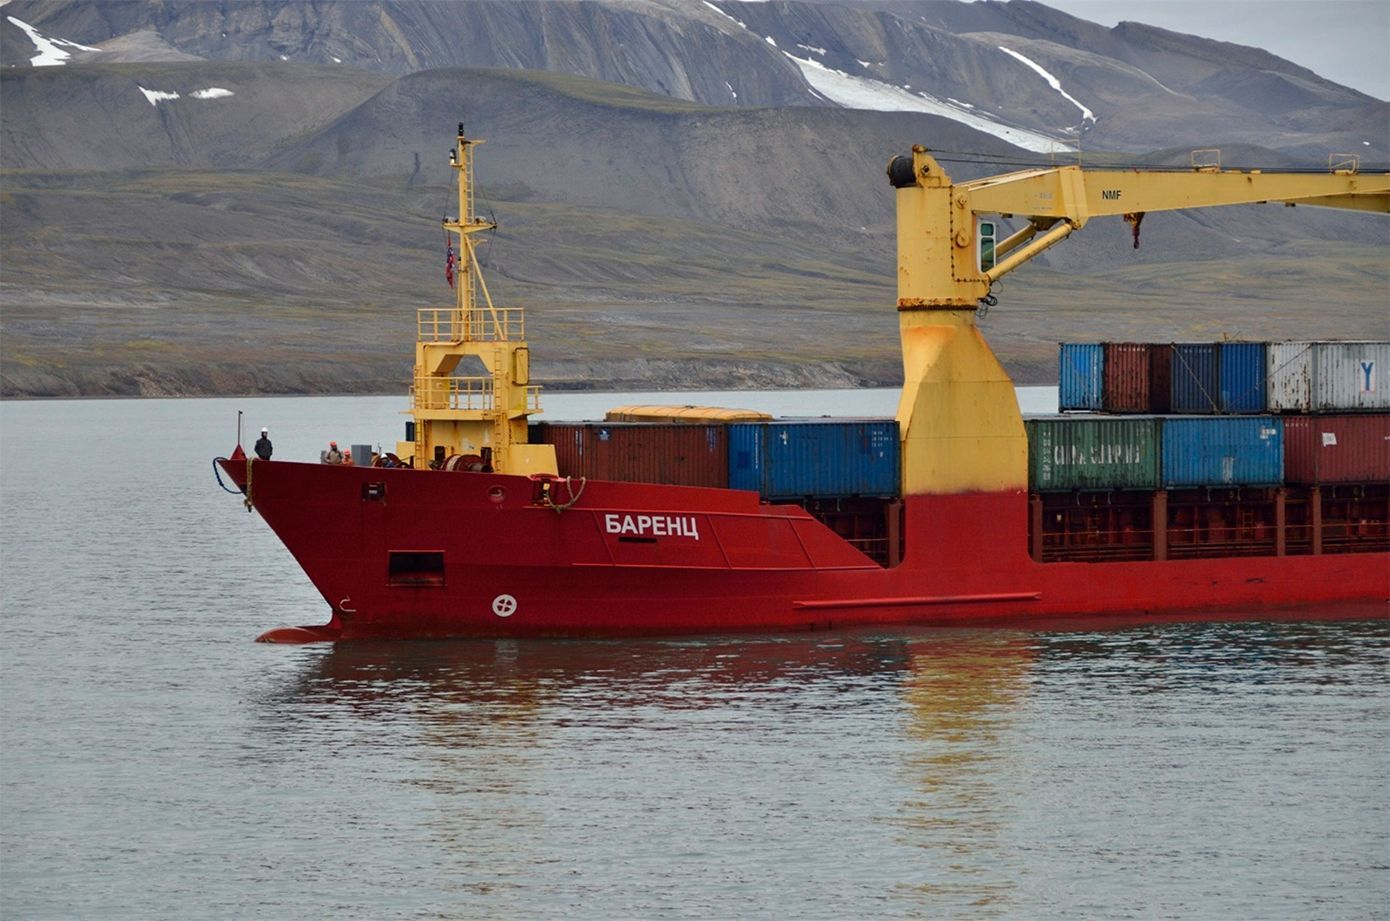 Spitsbergen-style Northern delivery of supplies